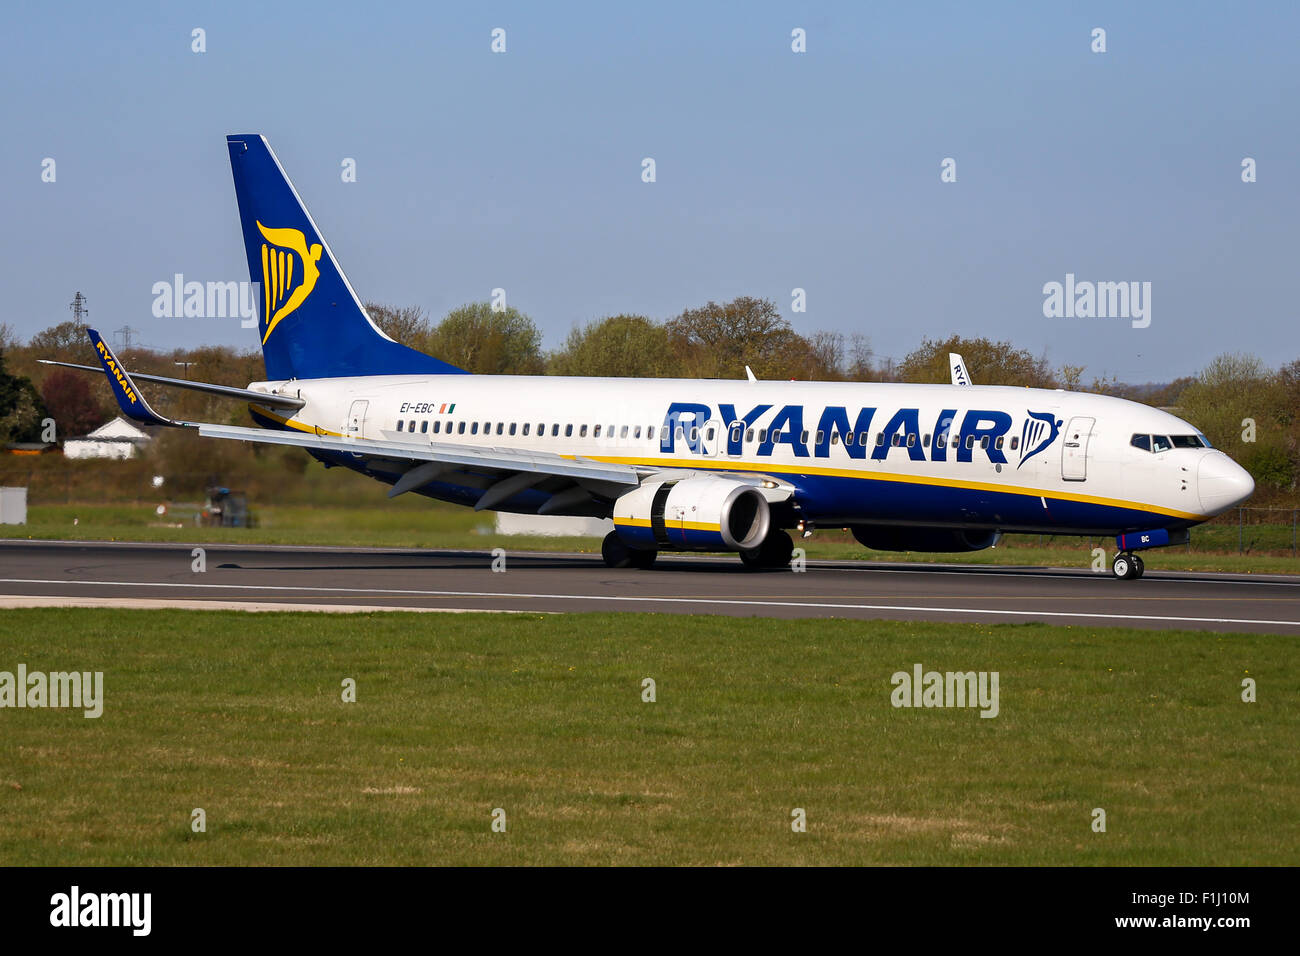 Ryanair Boeing 737-800 touches down on runway 05L at Manchester airport. - Stock Image